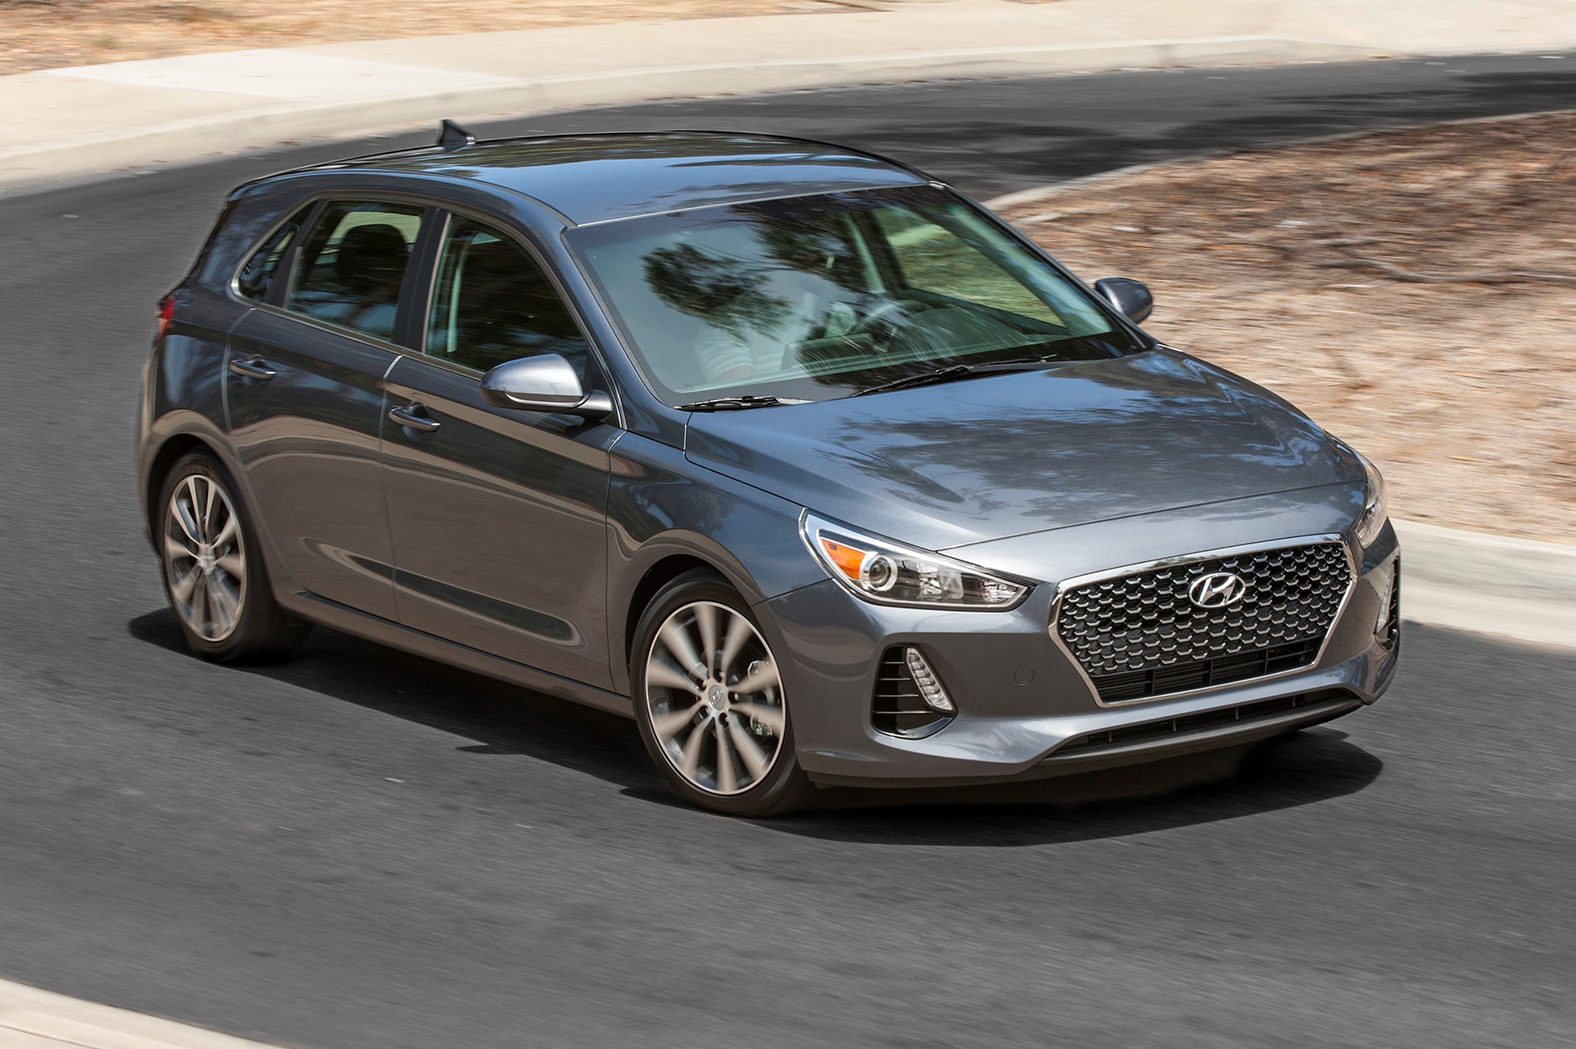 2018 Hyundai Elantra GT Front Three Quarter In Motion 05 E1501092039382